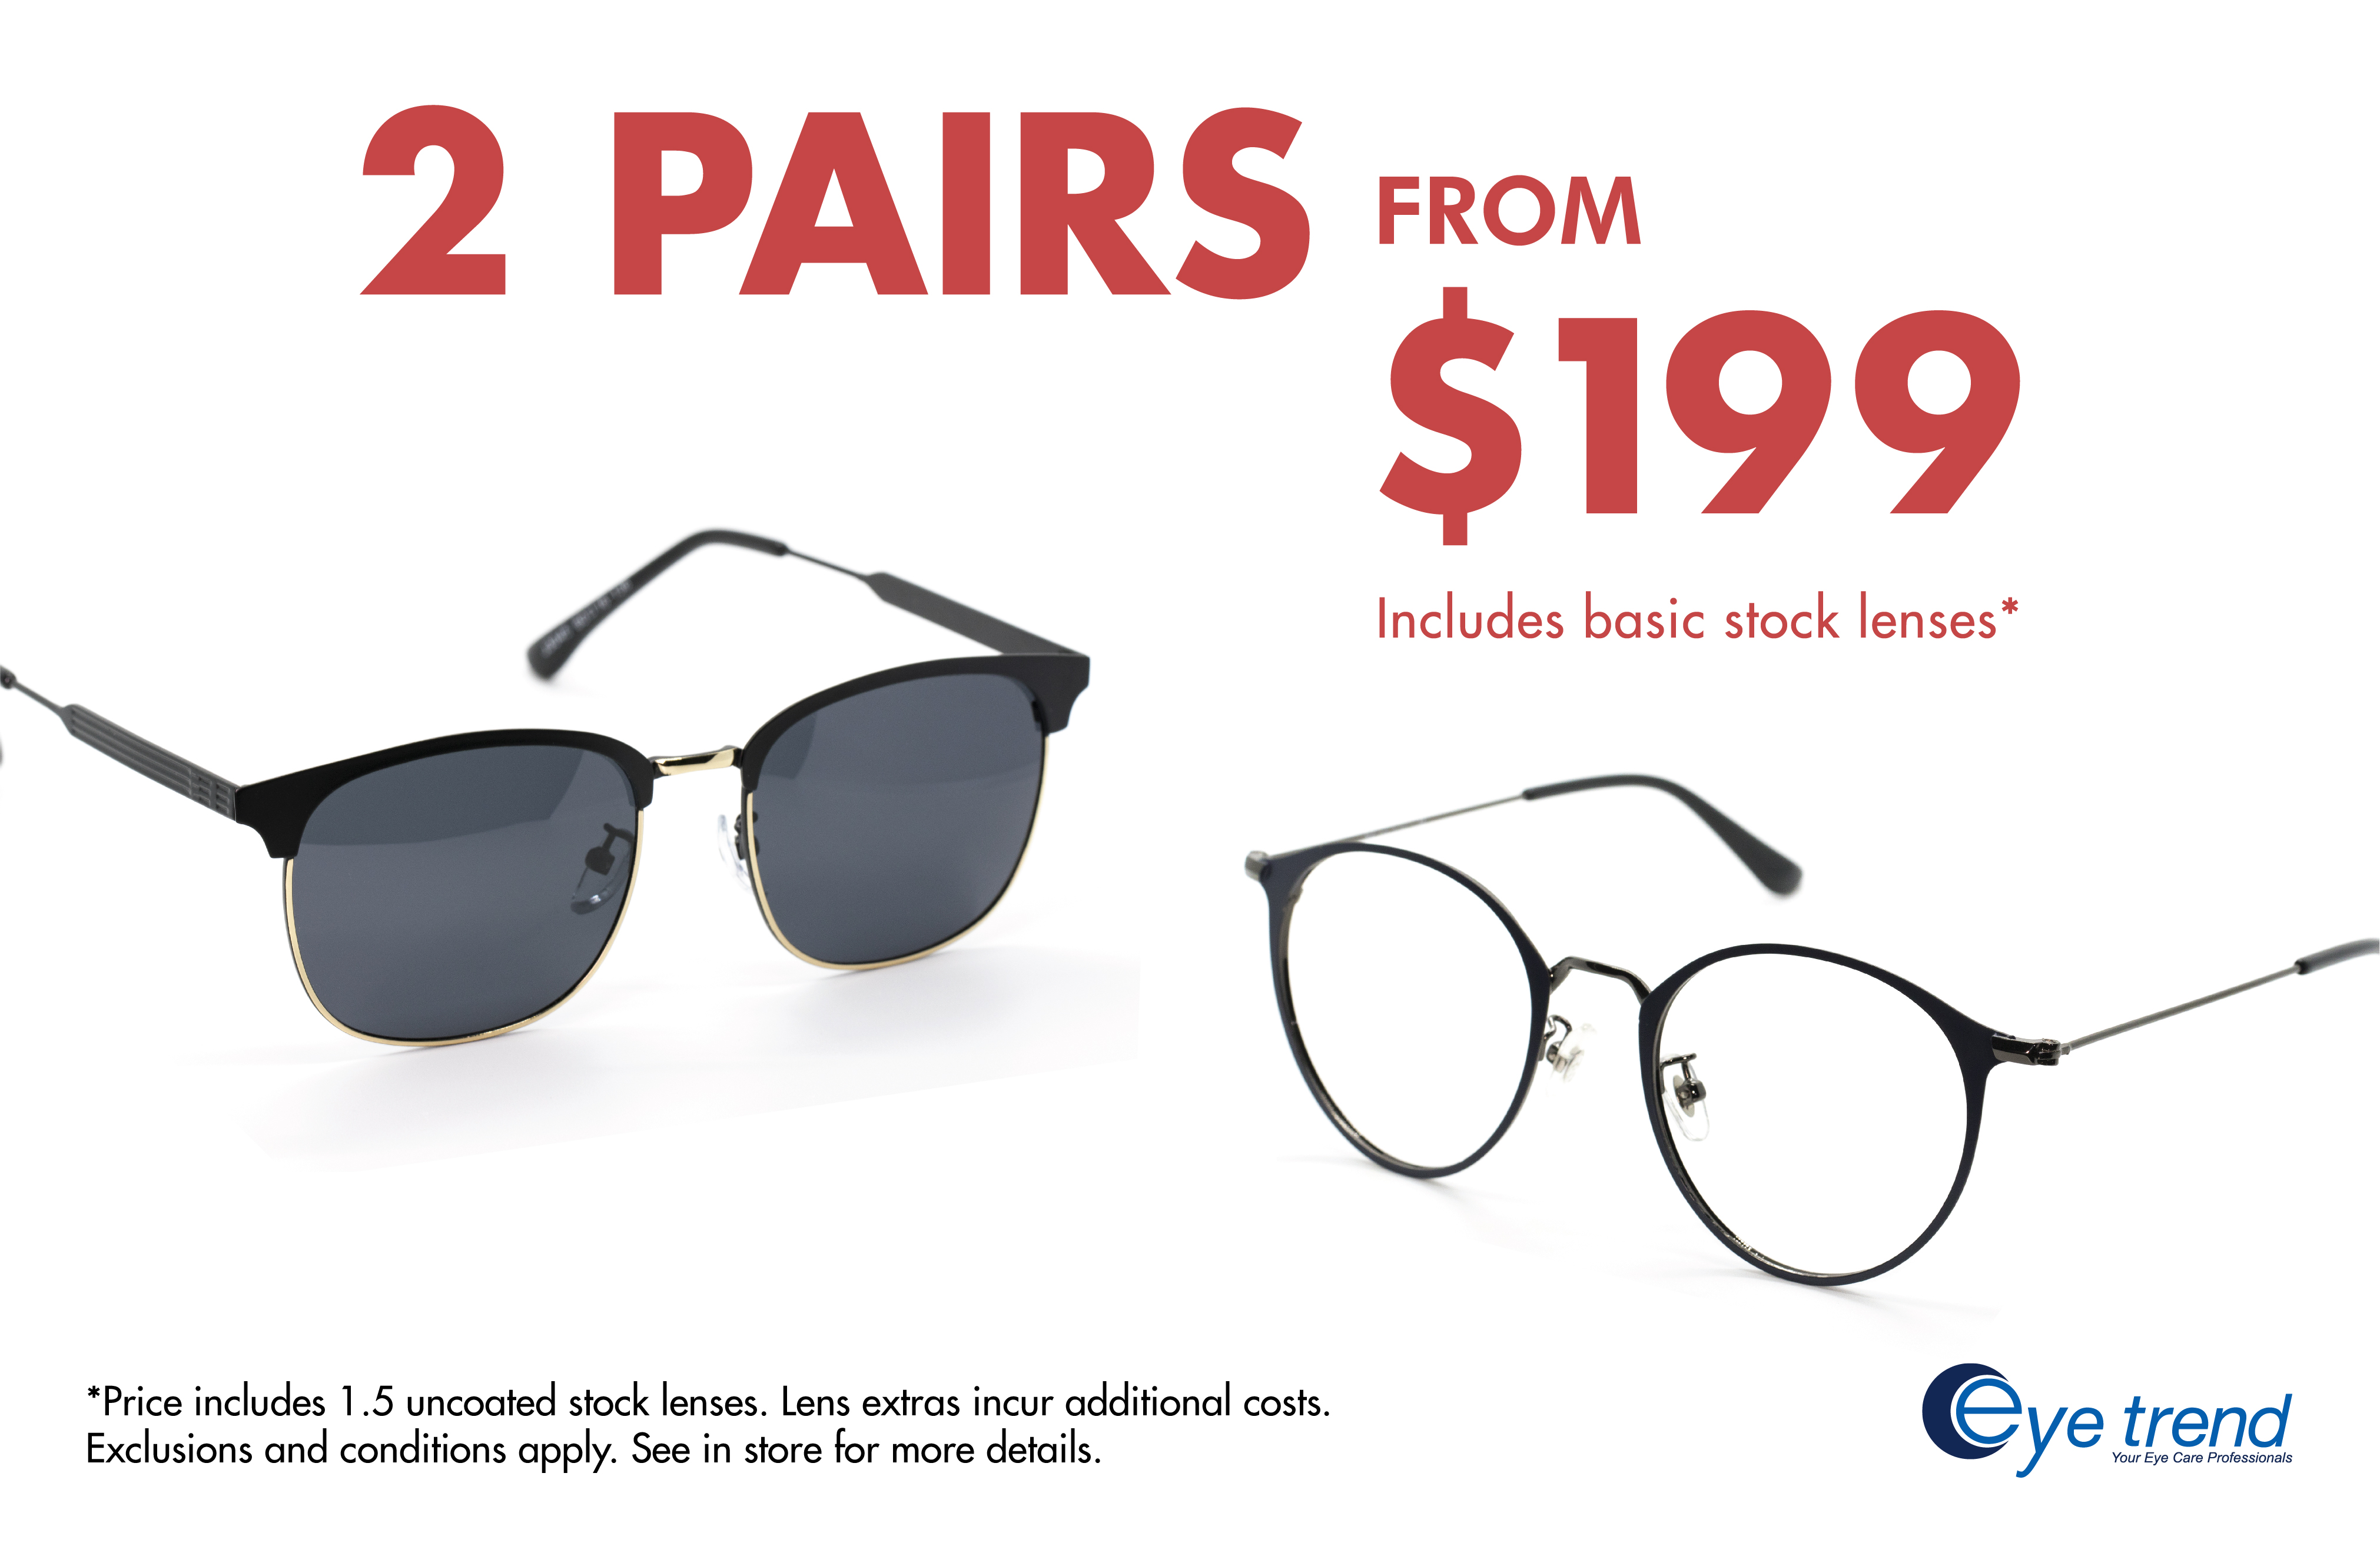 Eye Trend's 2 Pairs From $199 Offer